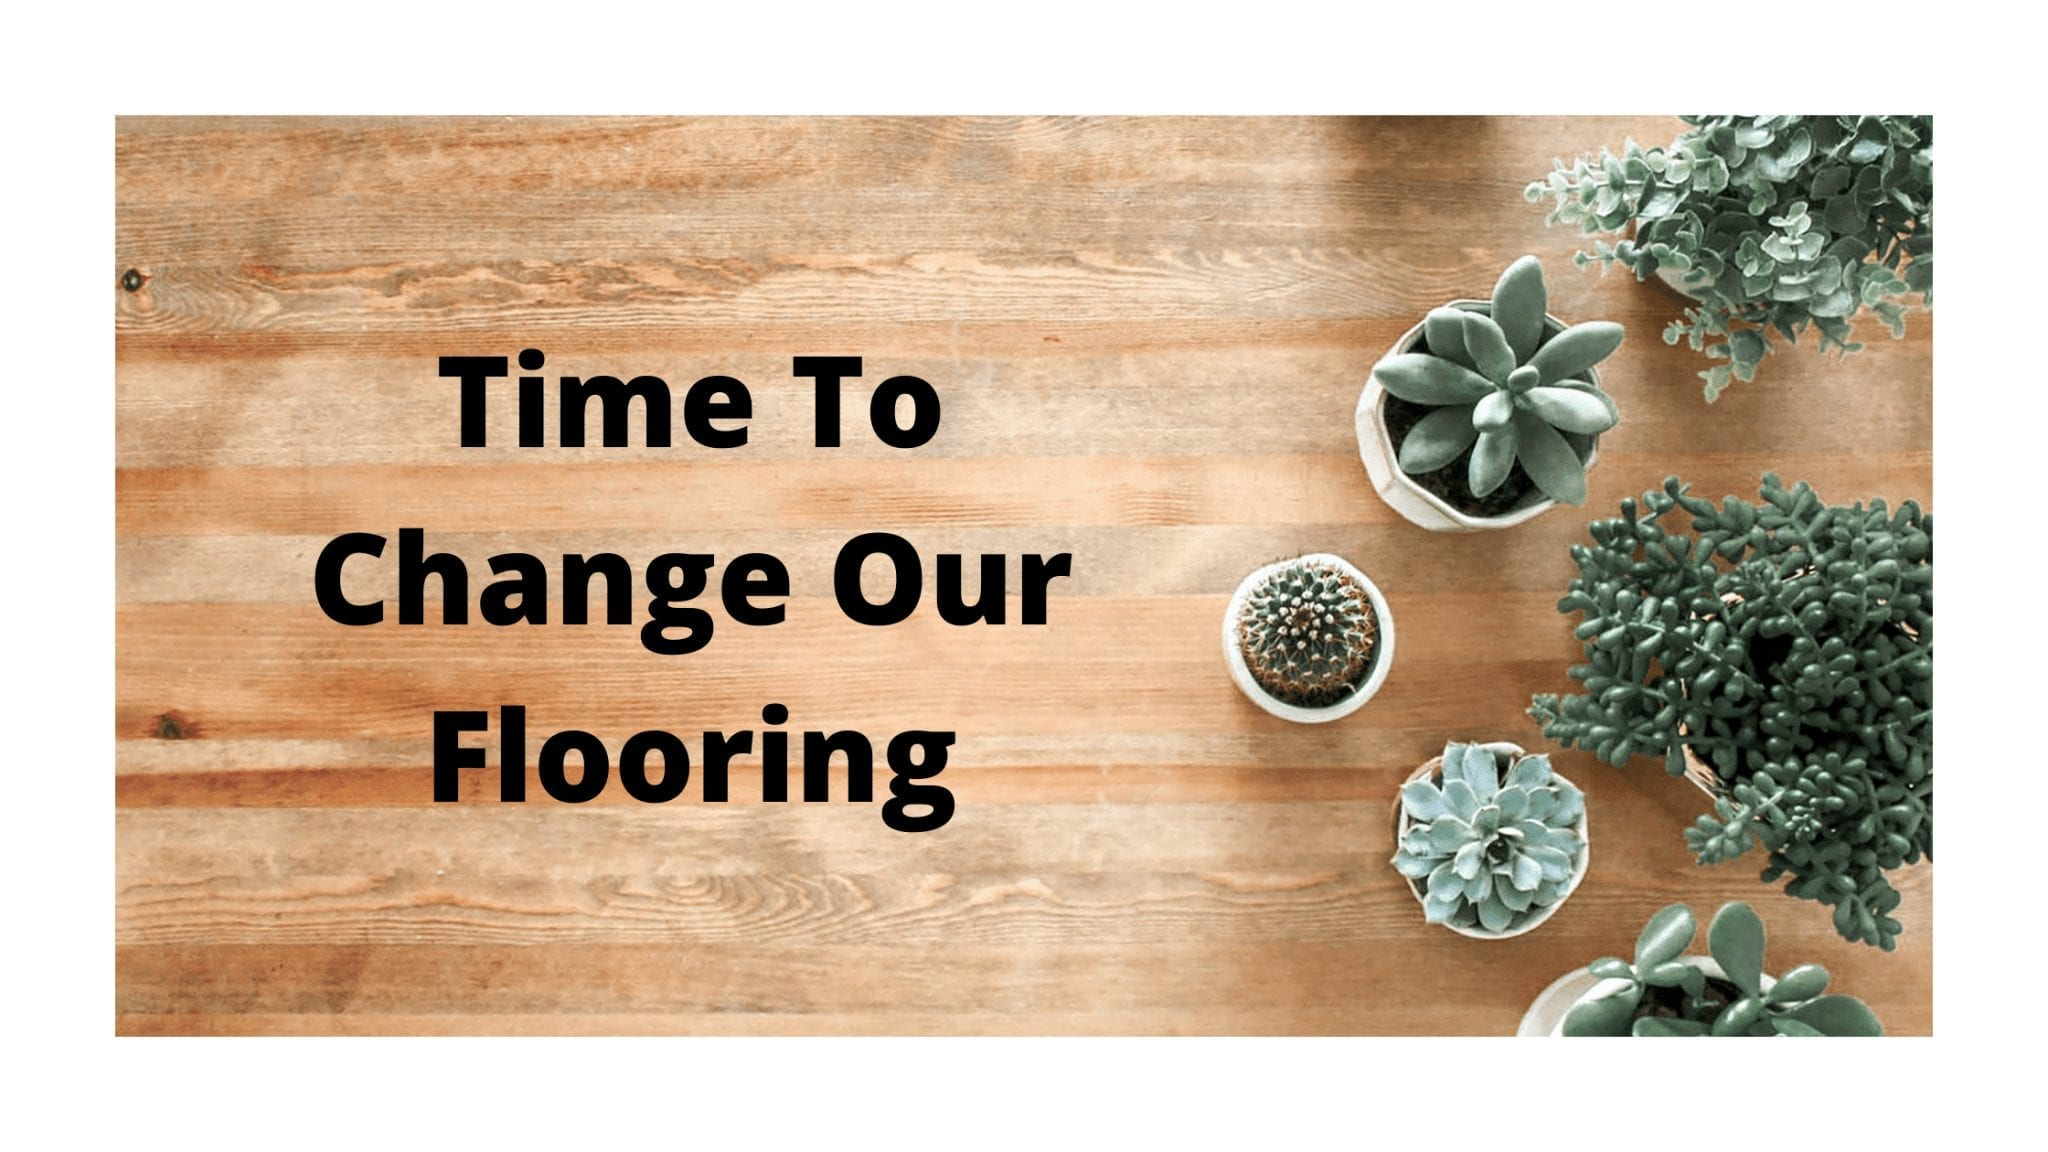 Time To Change Our Flooring